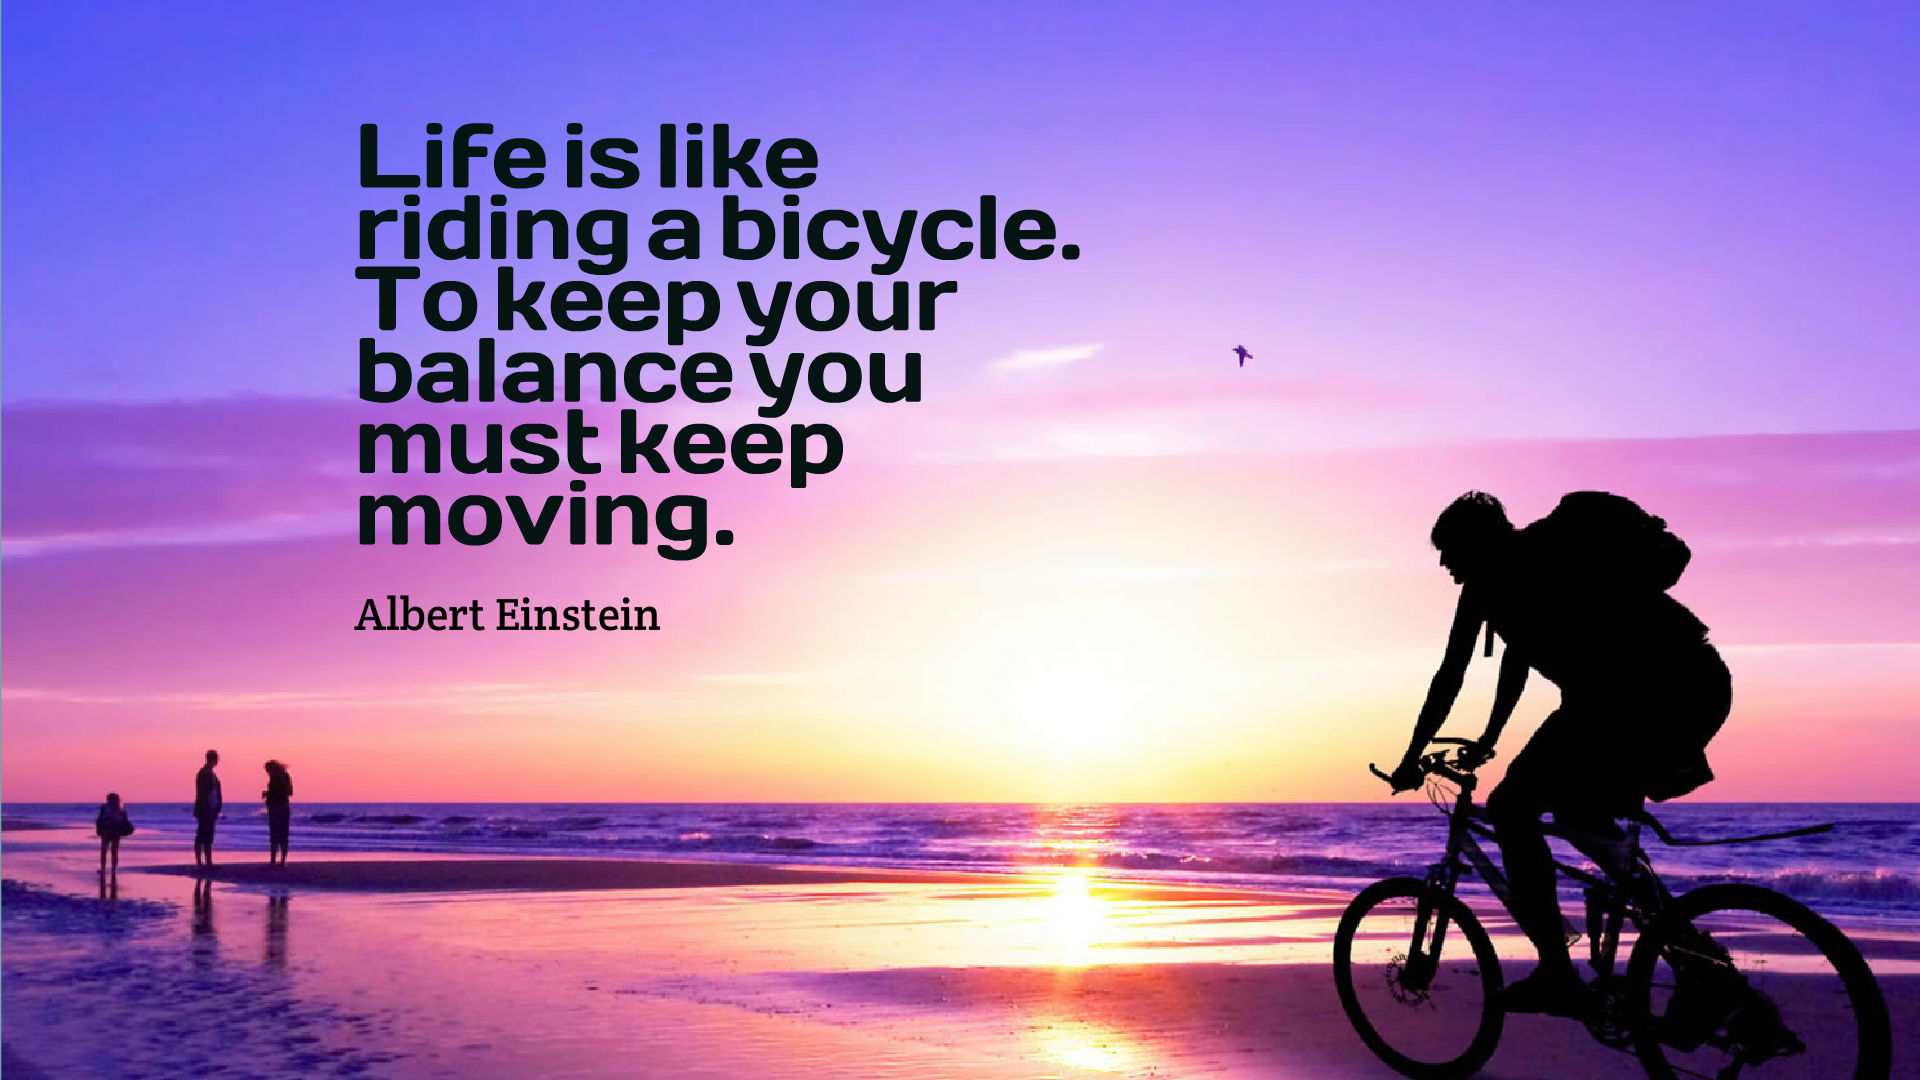 Quote Wallpaper For Sony Xperia Life Is A Riding Bicycle Quotes Wallpaper 10723 Baltana